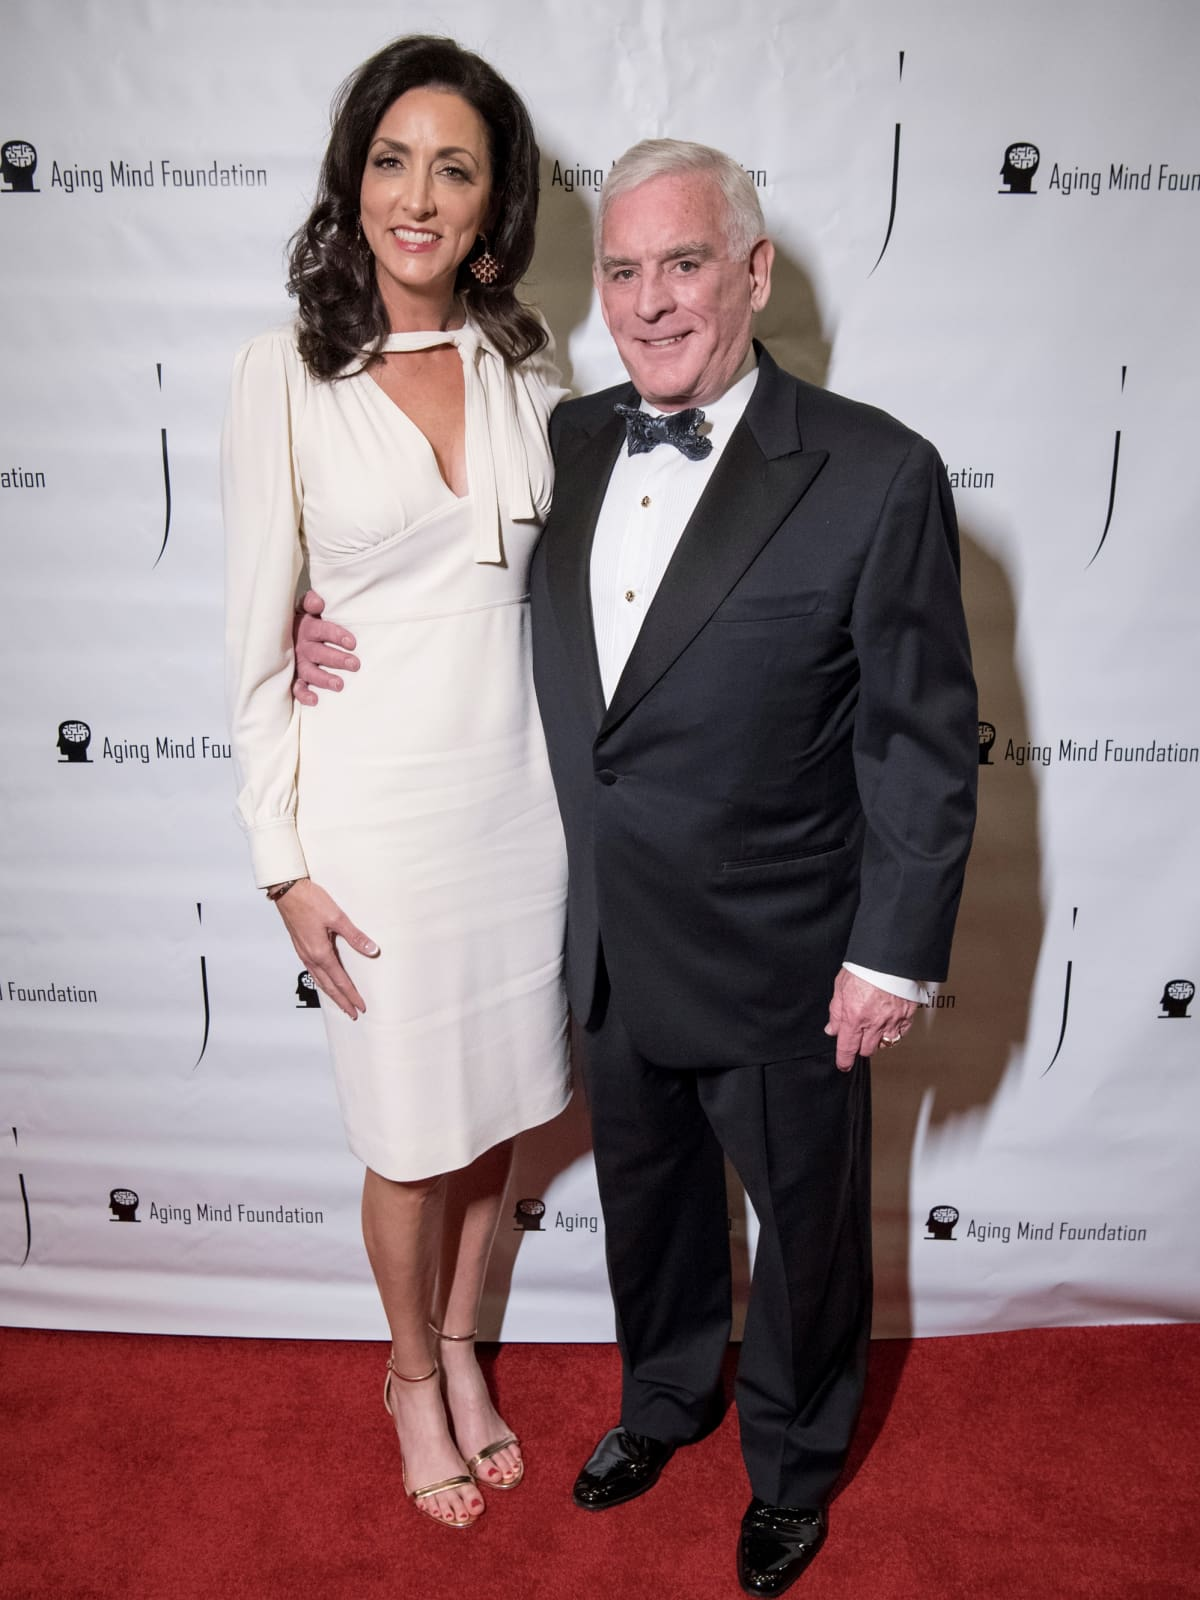 Aging Mind Foundation Gala 2018, Stacy Nutkis, Ben Fischer